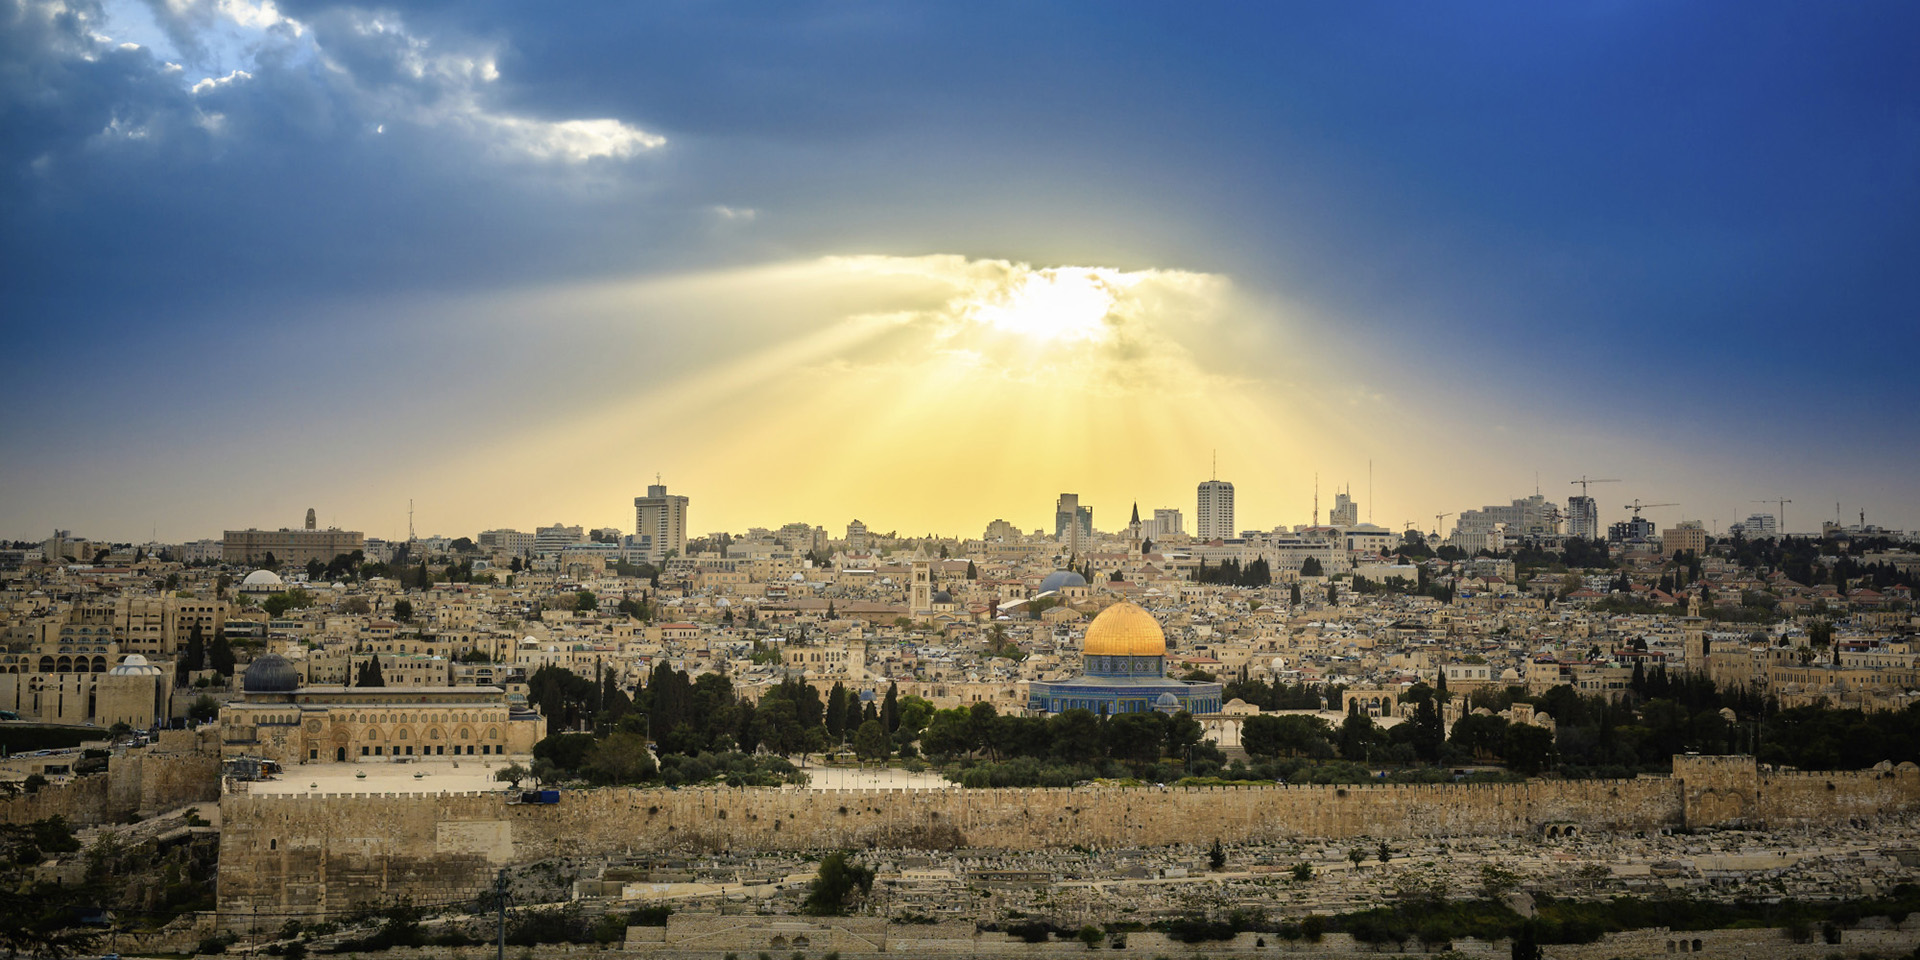 a description of jerusalem located in the heart of israel Jerusalem is in ways emblematic of the israel-palestine conflict itself at its heart lies the tussle over who gets to control the ancient city that is sacred to jews, muslims and christians.